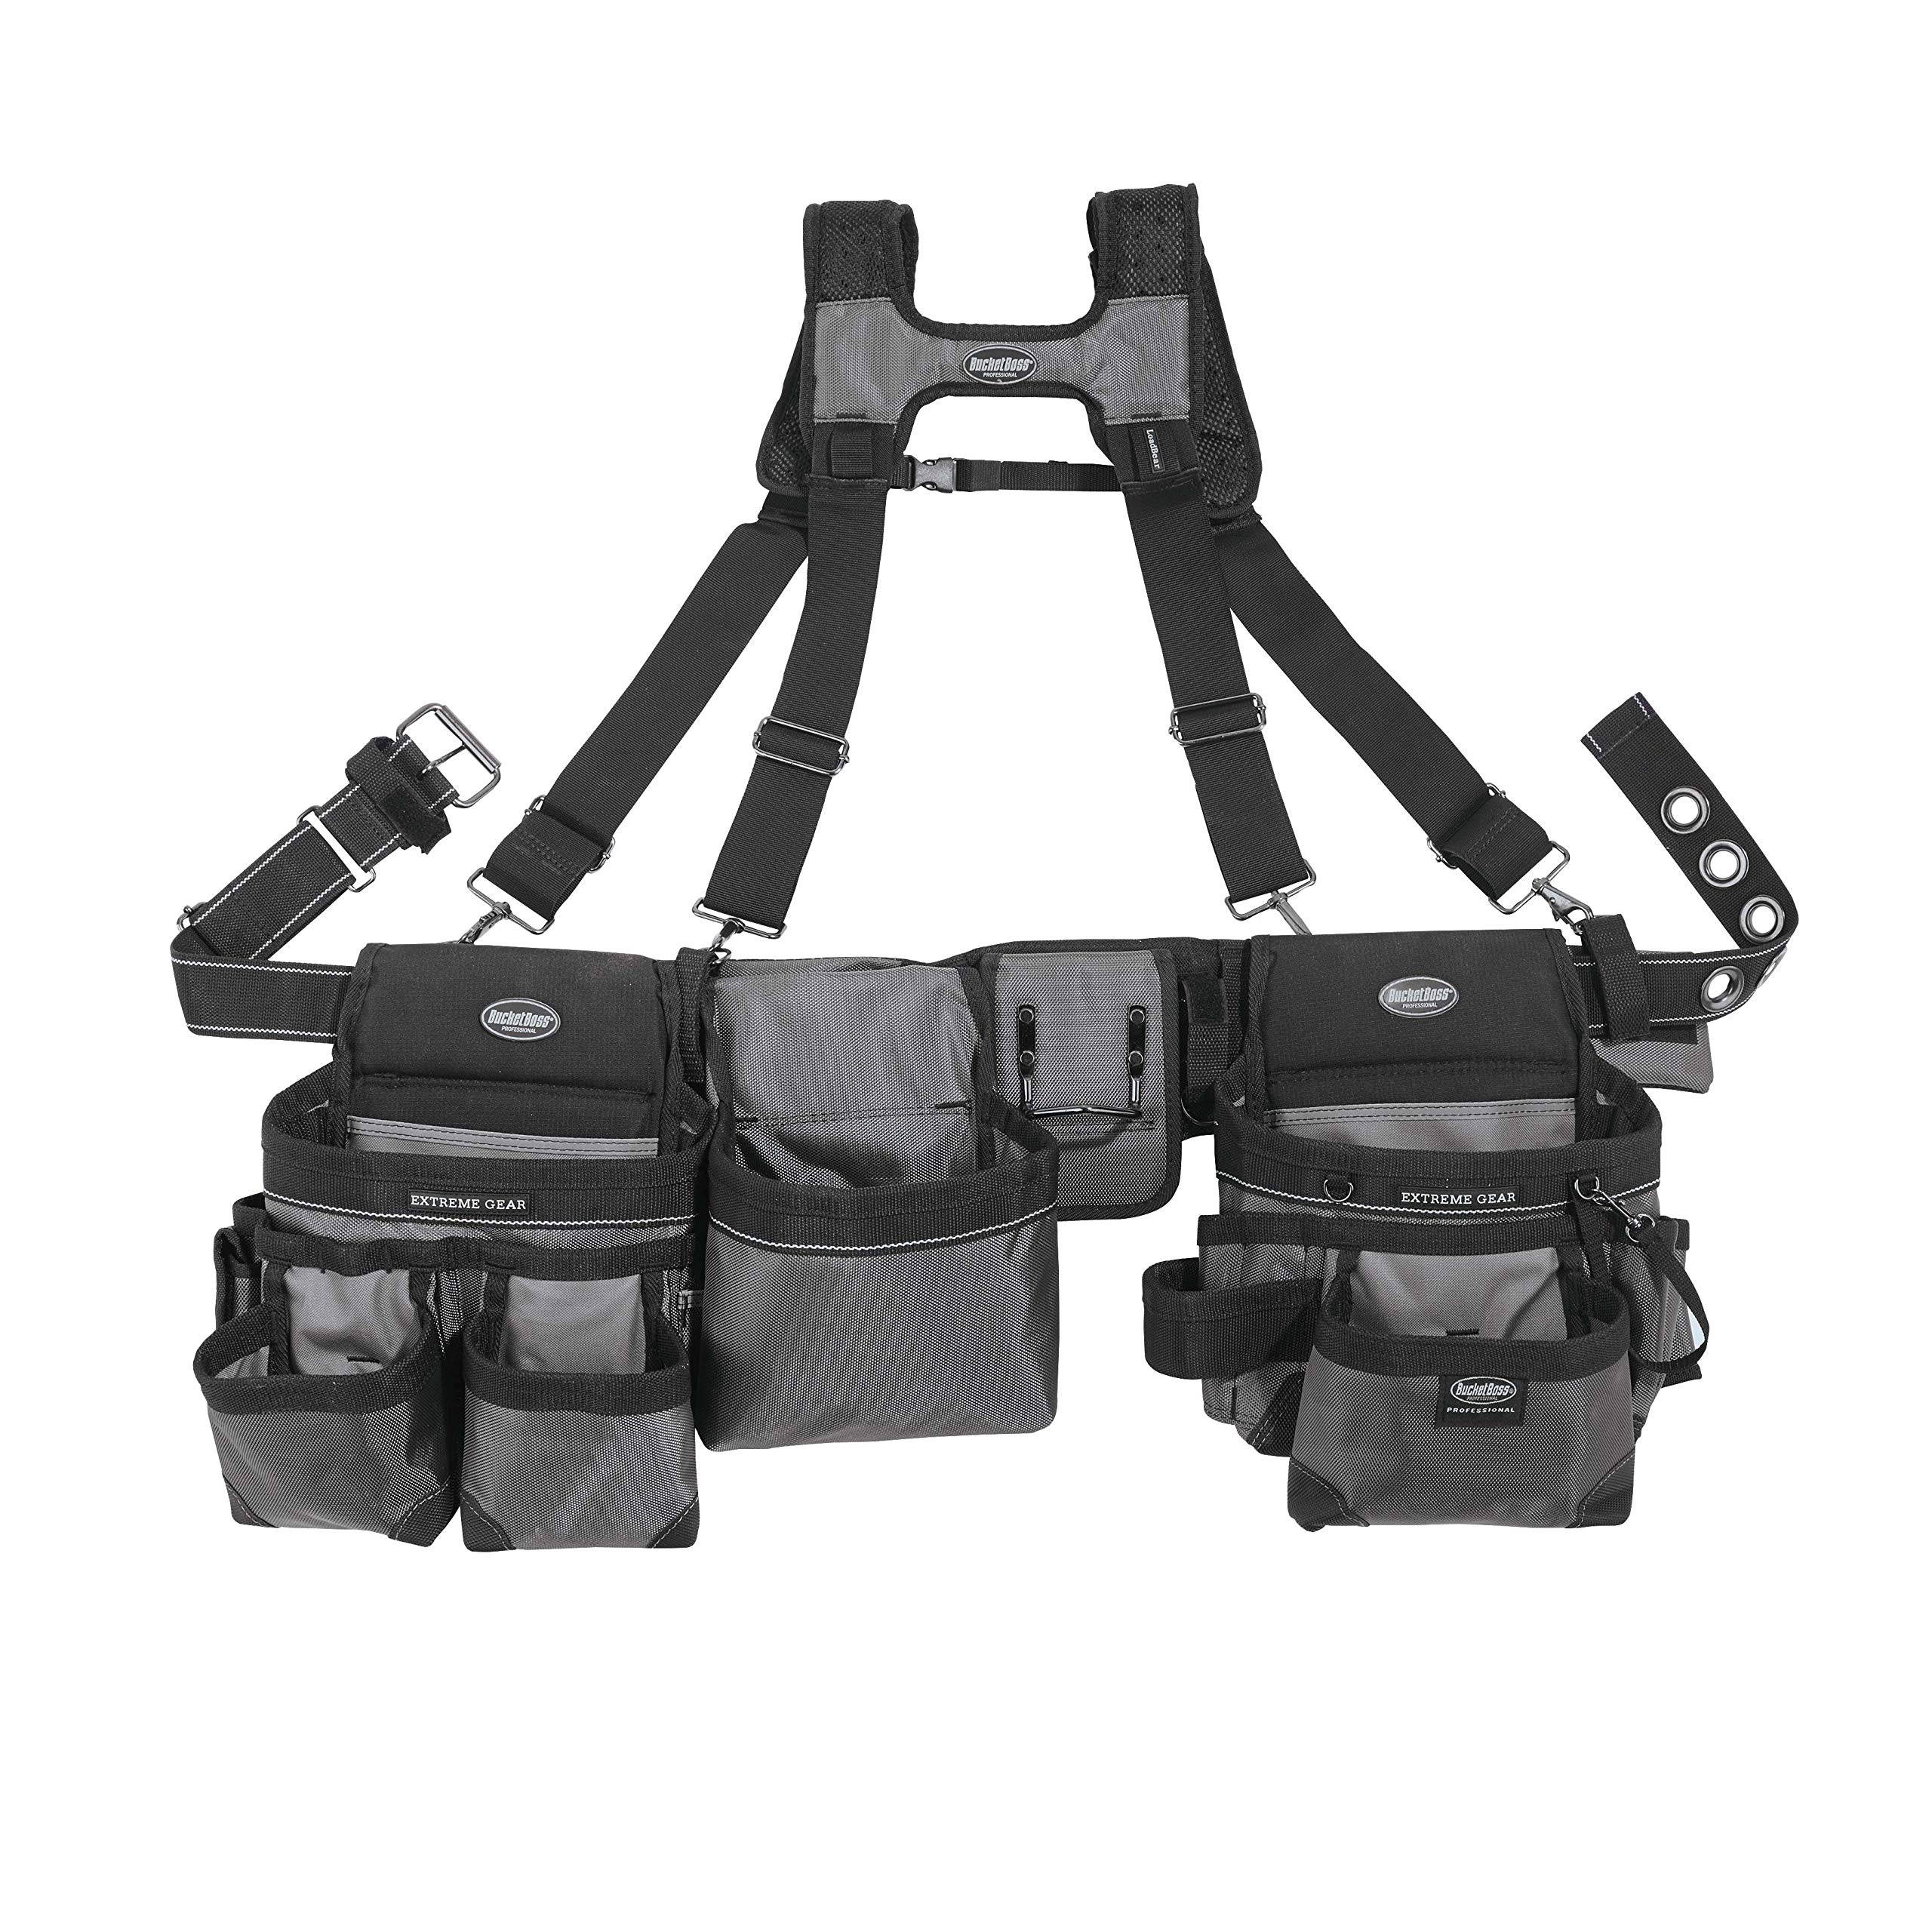 Bucket Boss Mullet Buster 3 Bag Tool Belt with Suspenders in Grey, 55135 by Bucket Boss